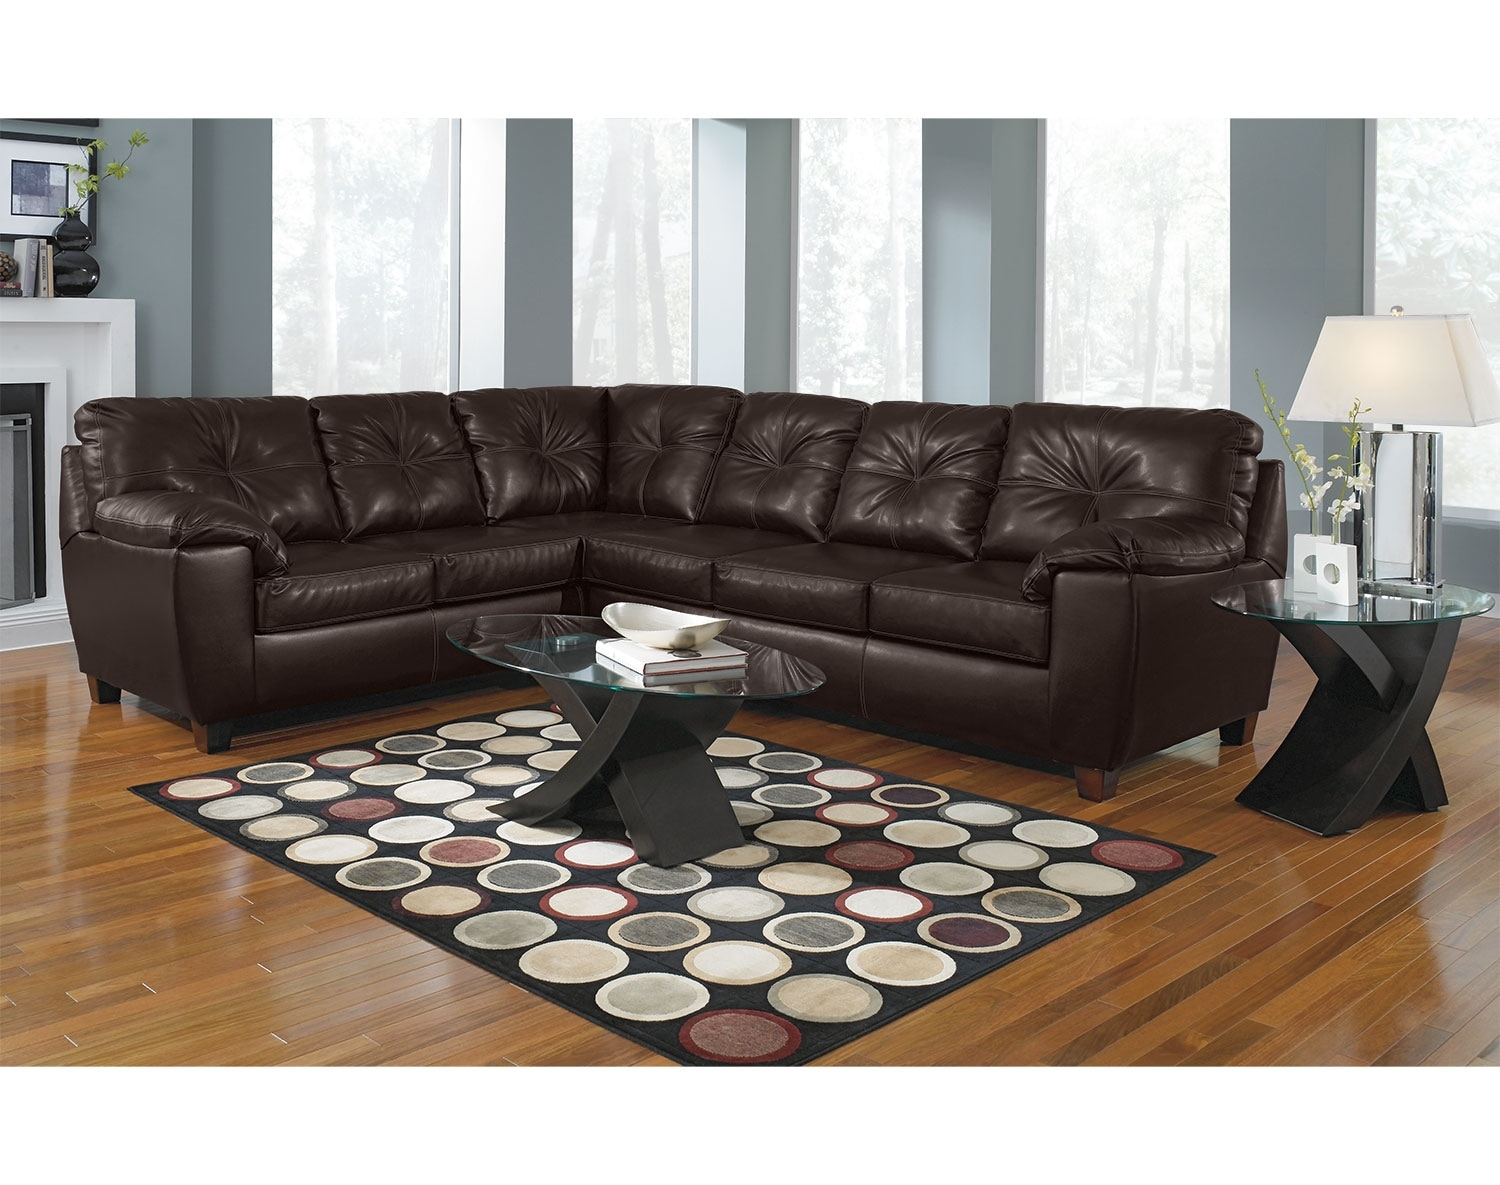 The Rialto Sectional Collection - Brown